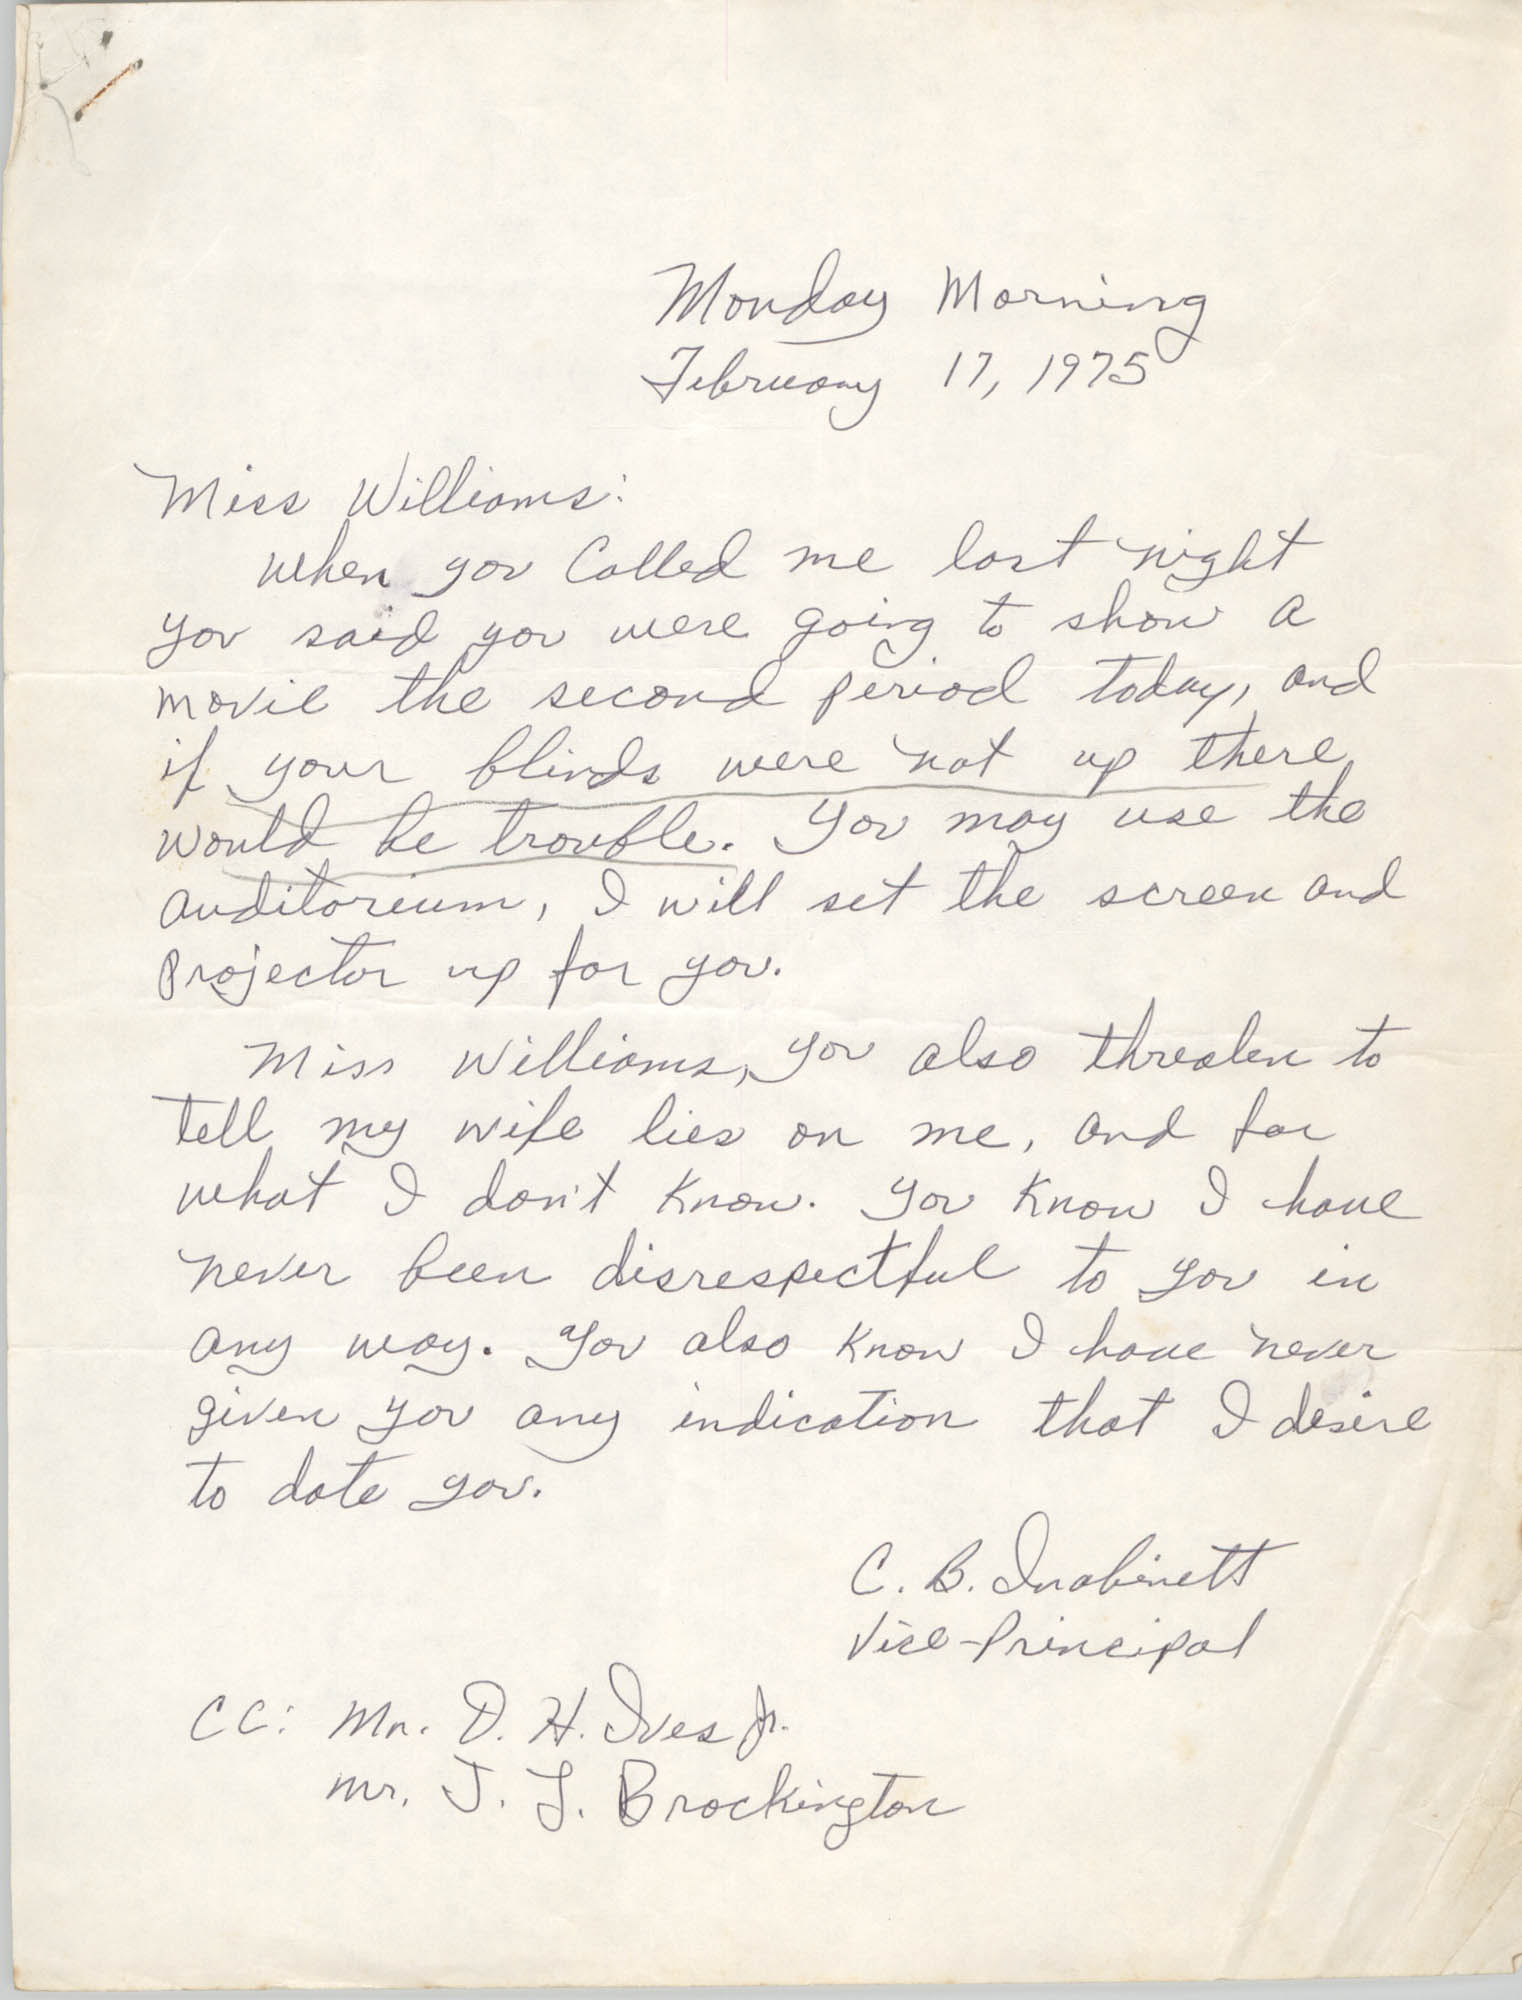 Letter from C. B. Inabinett to Mary Louise Williams, February 17, 1975